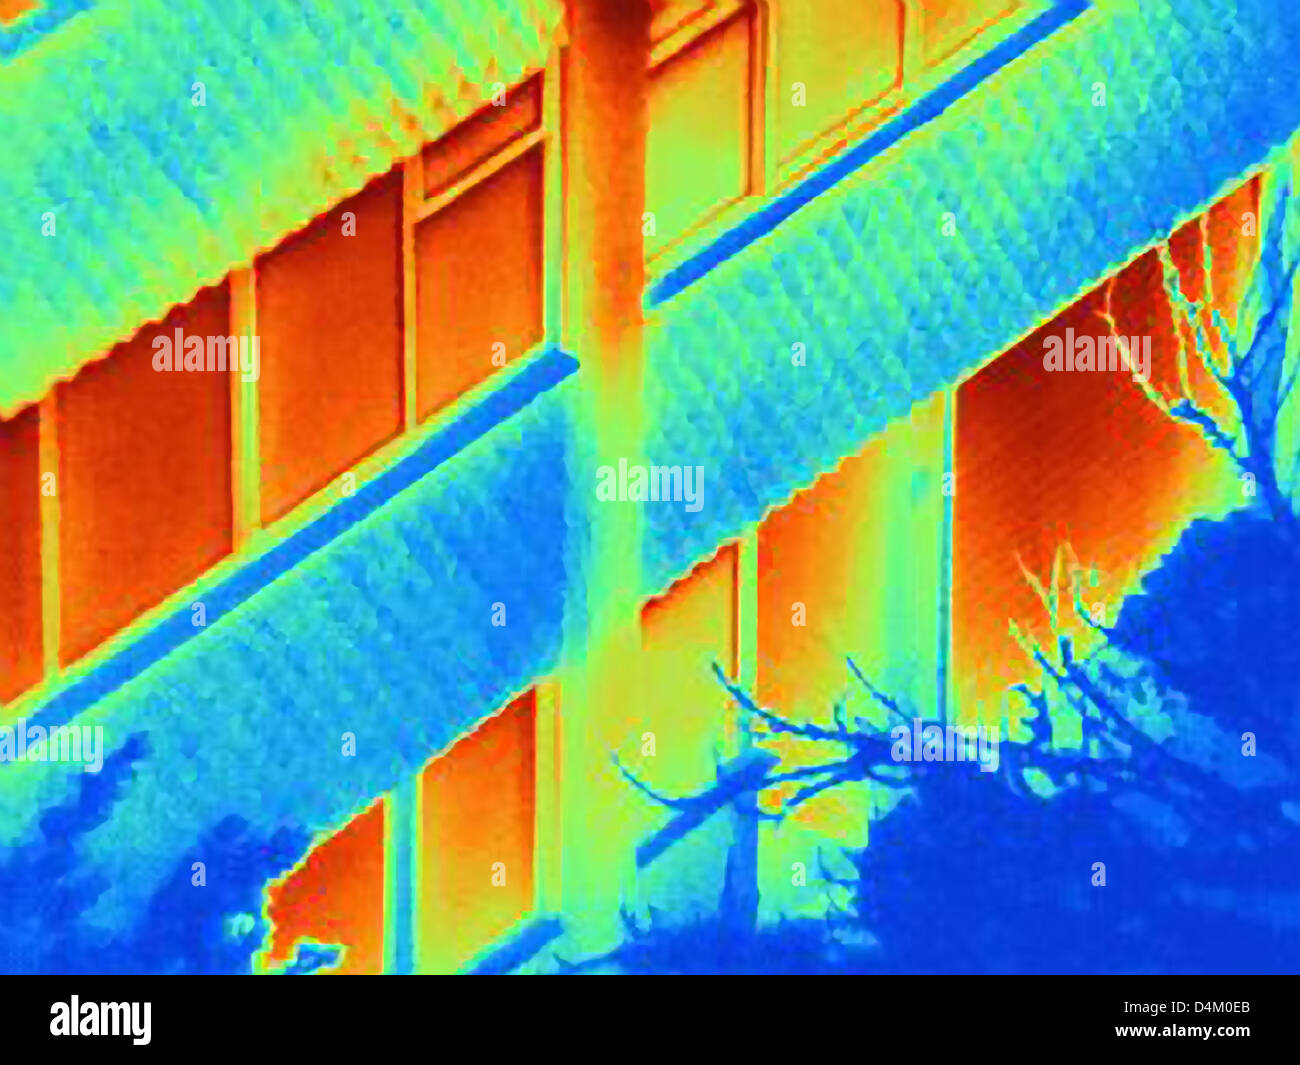 Thermal image of apartment building - Stock Image